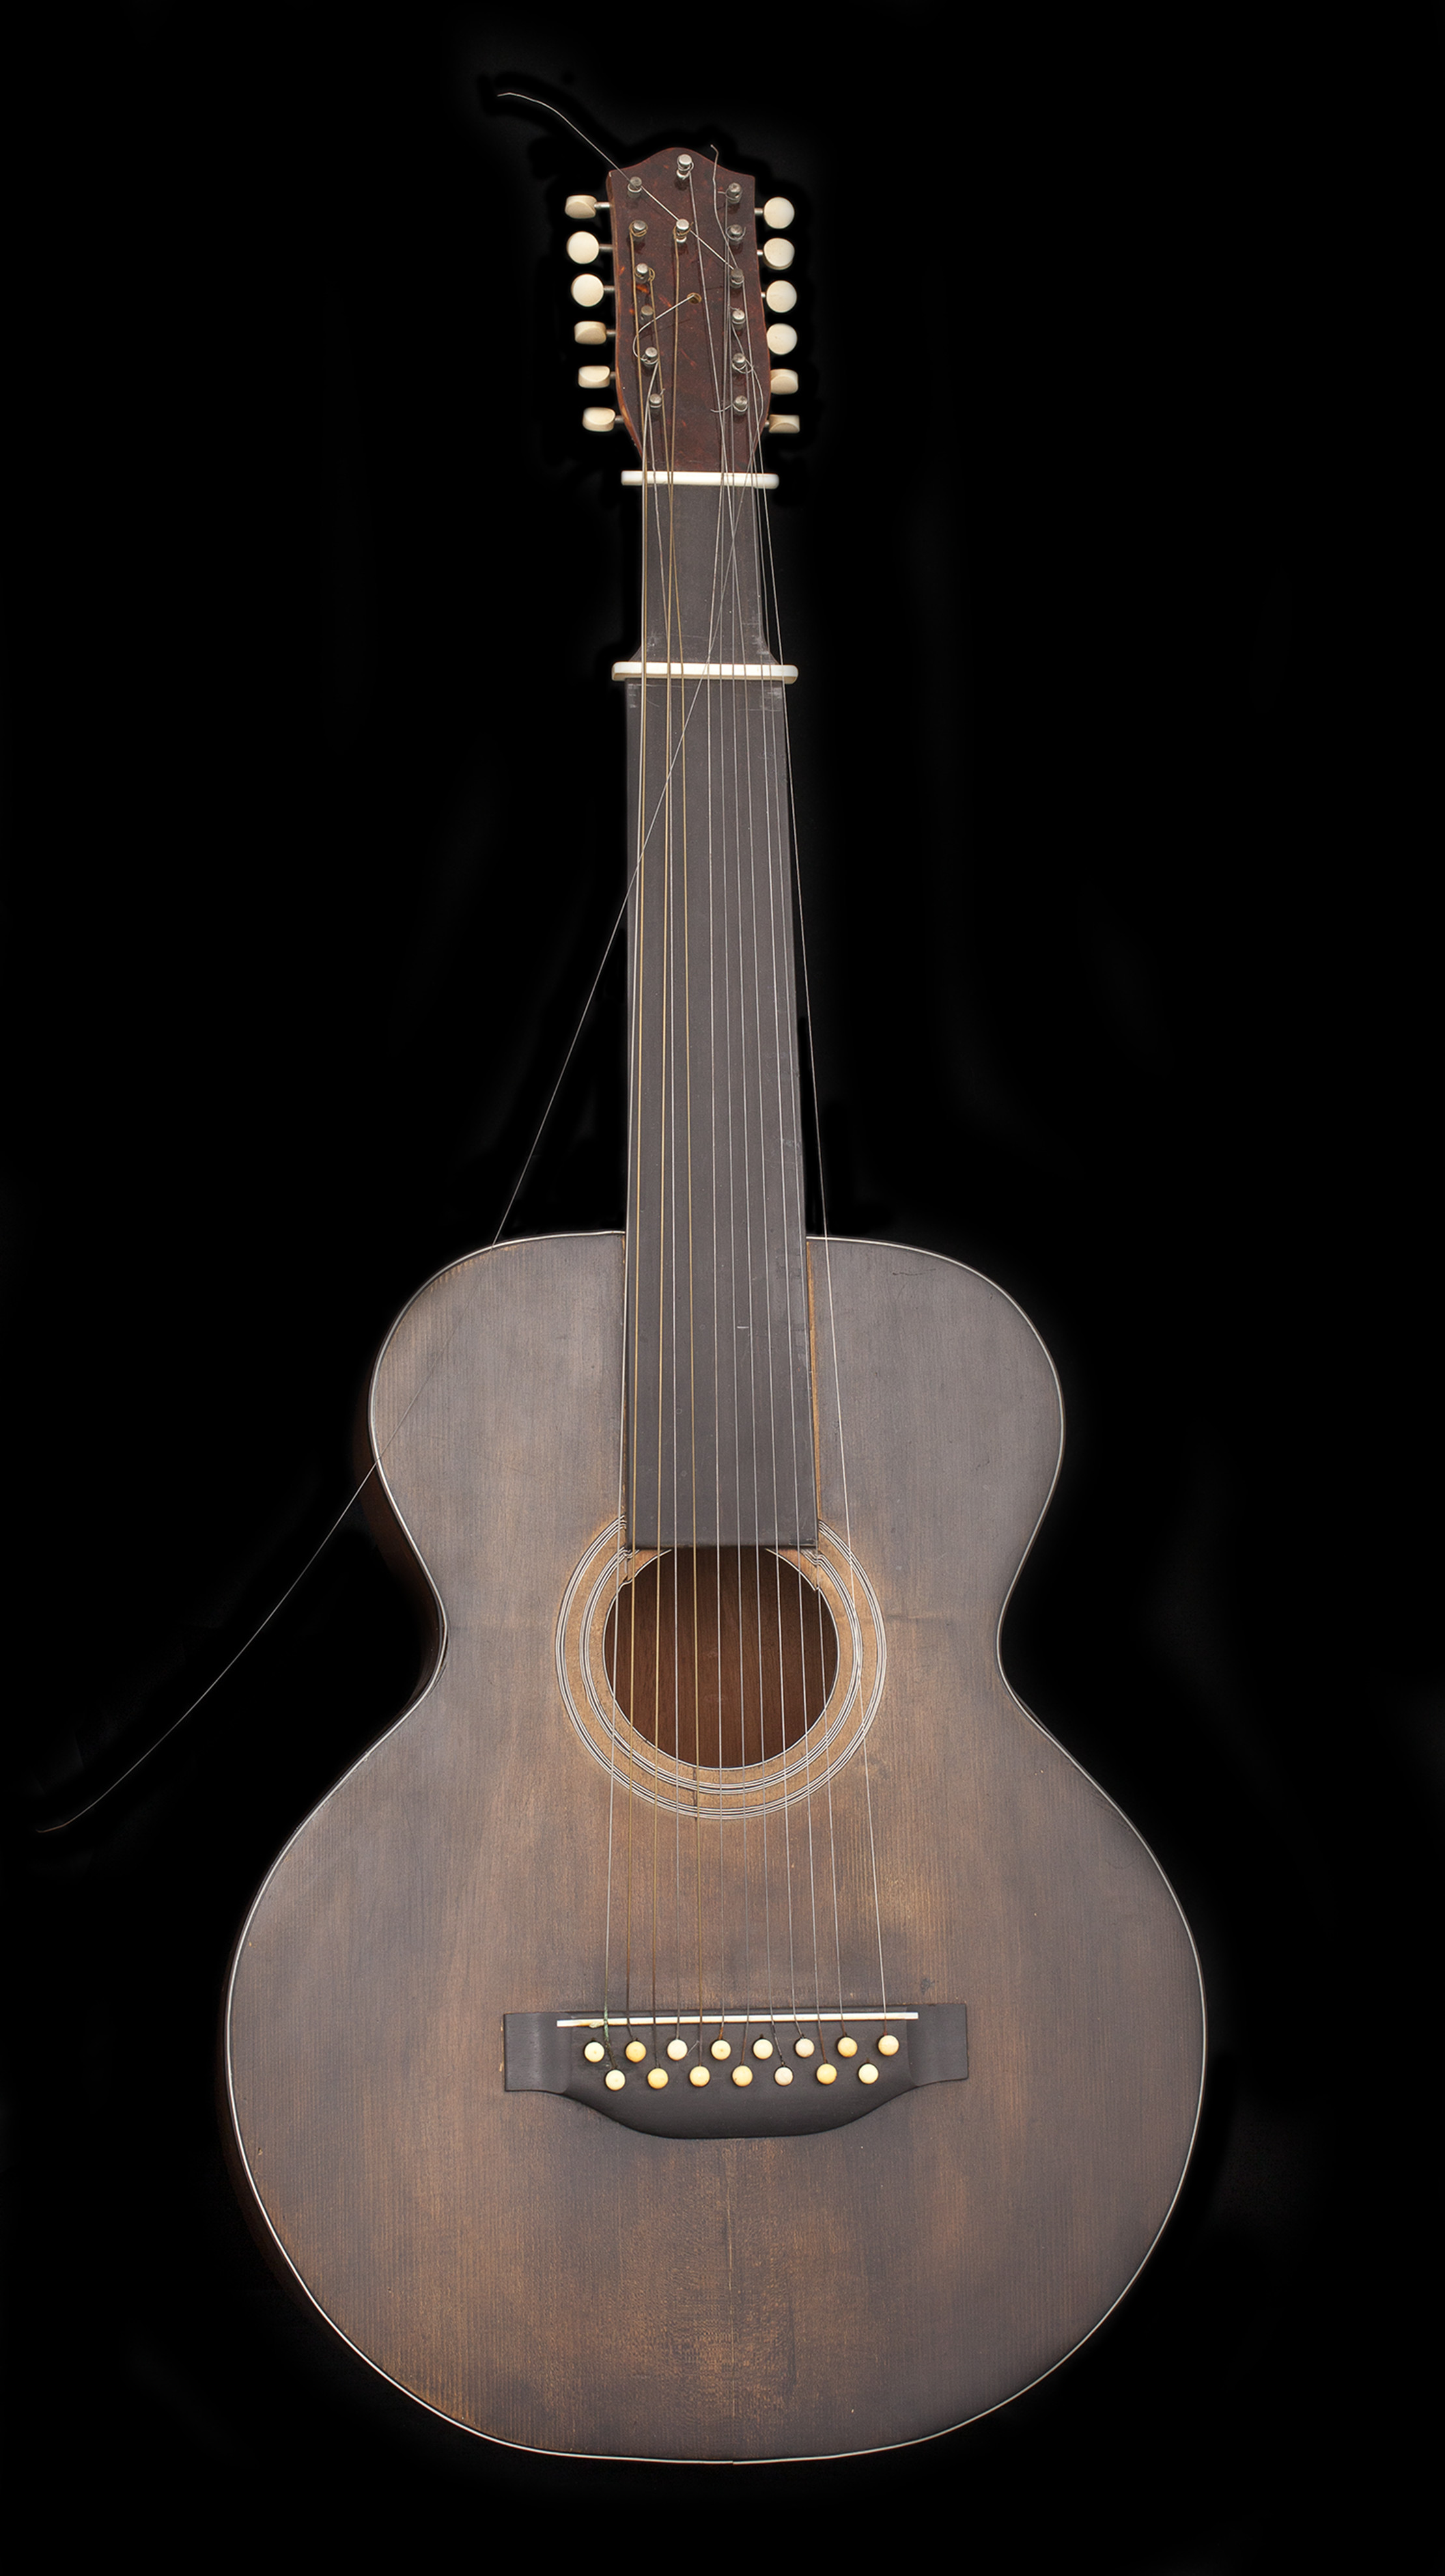 Oahu Jumbo 68B model acoustic guitar